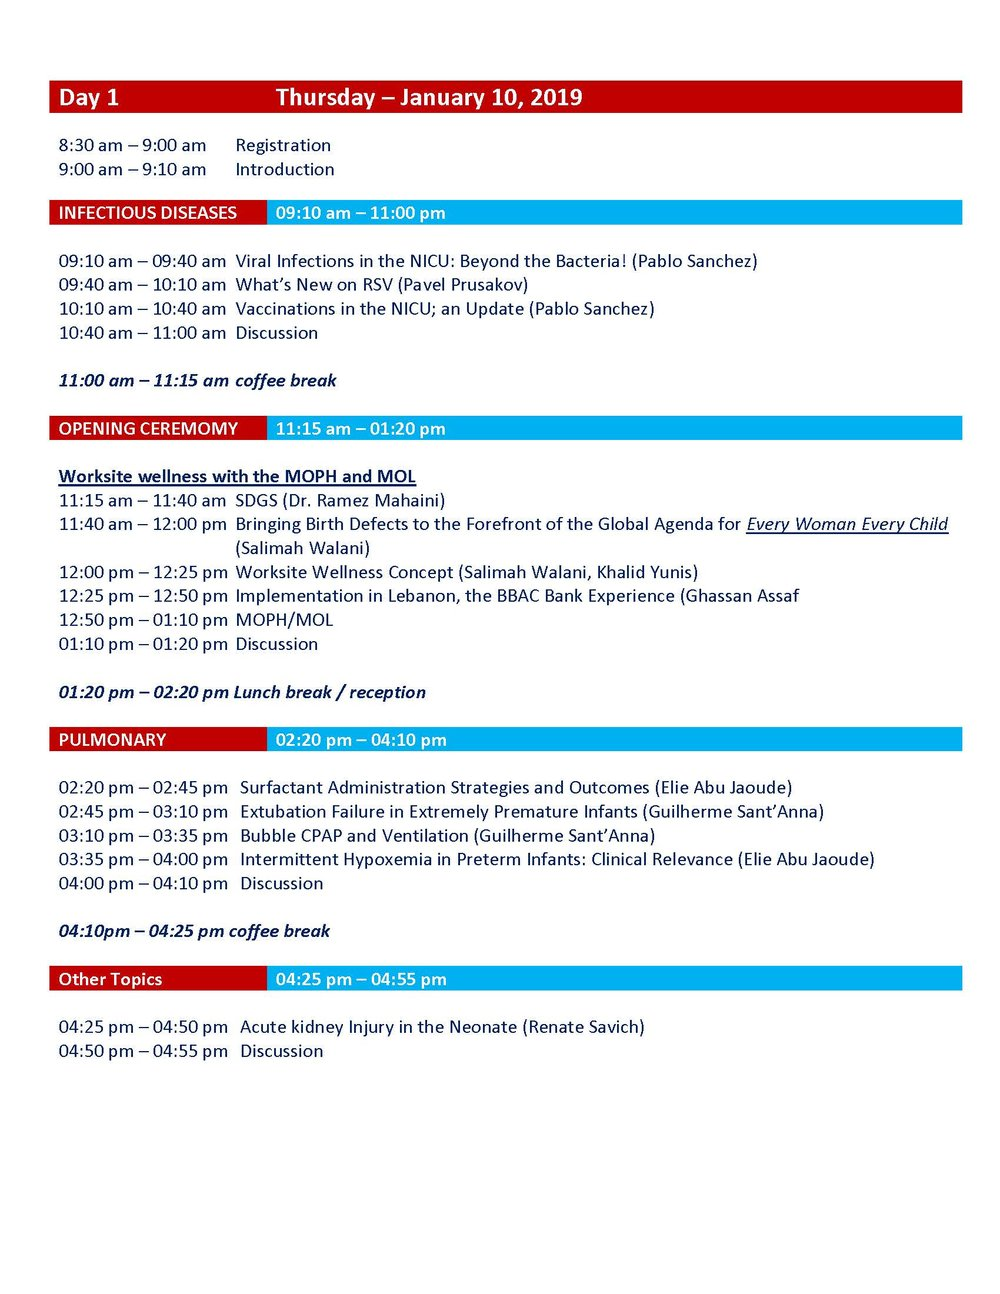 7th NCPNN Meeting Agenda, January 10-12, 2019, Le Bristol Hotel!_Page_2.jpg